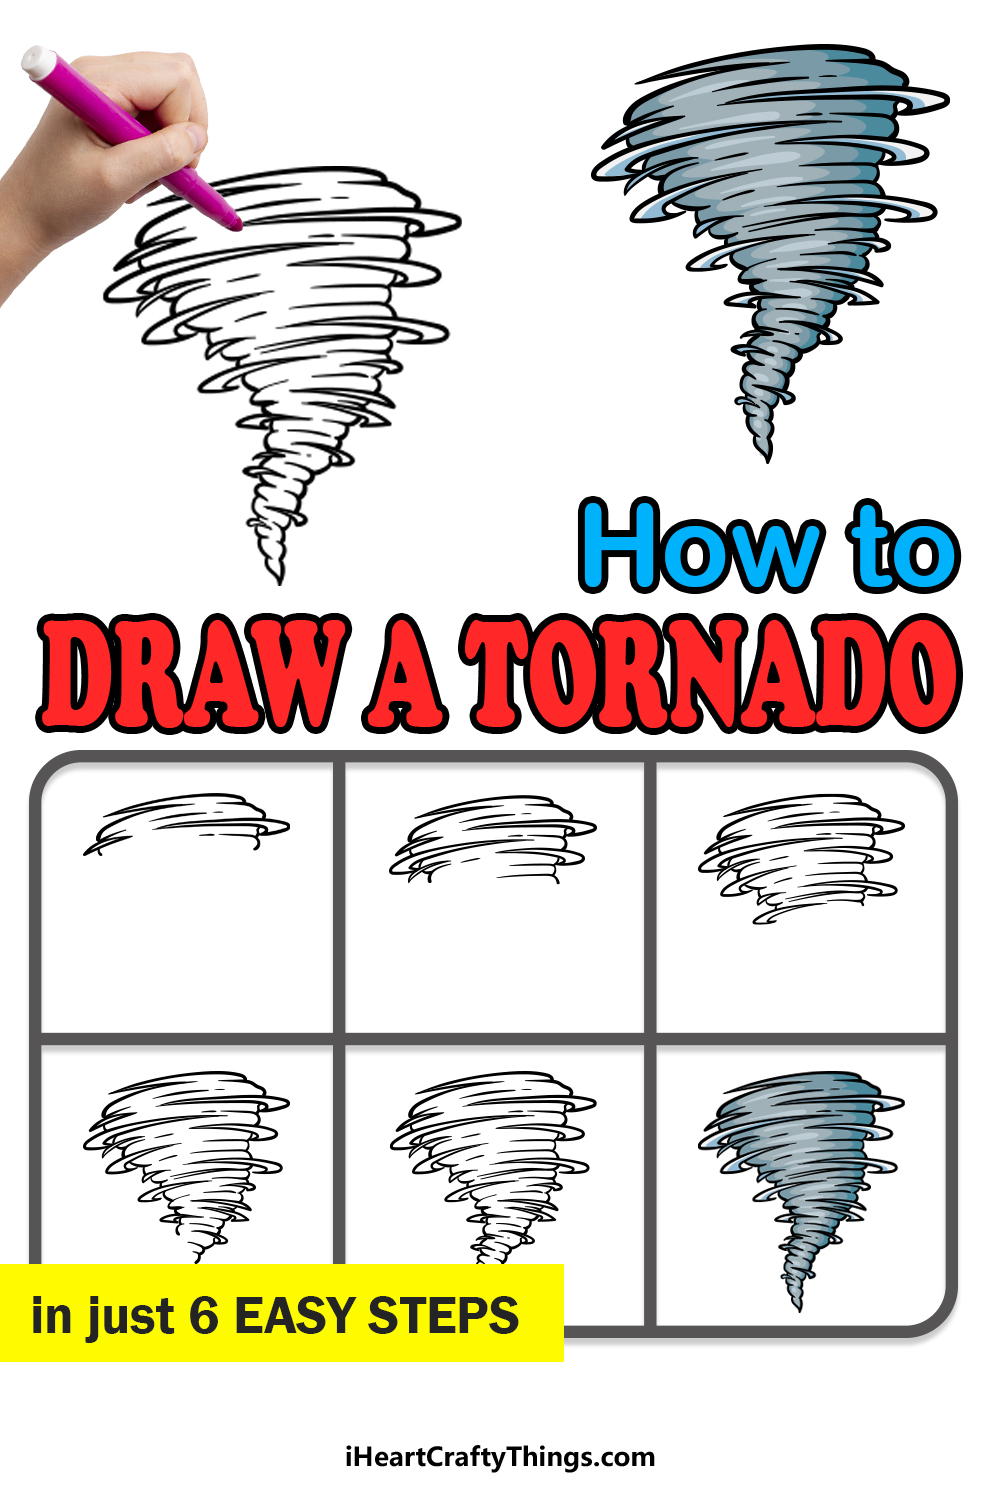 how to draw a tornado in 6 easy steps